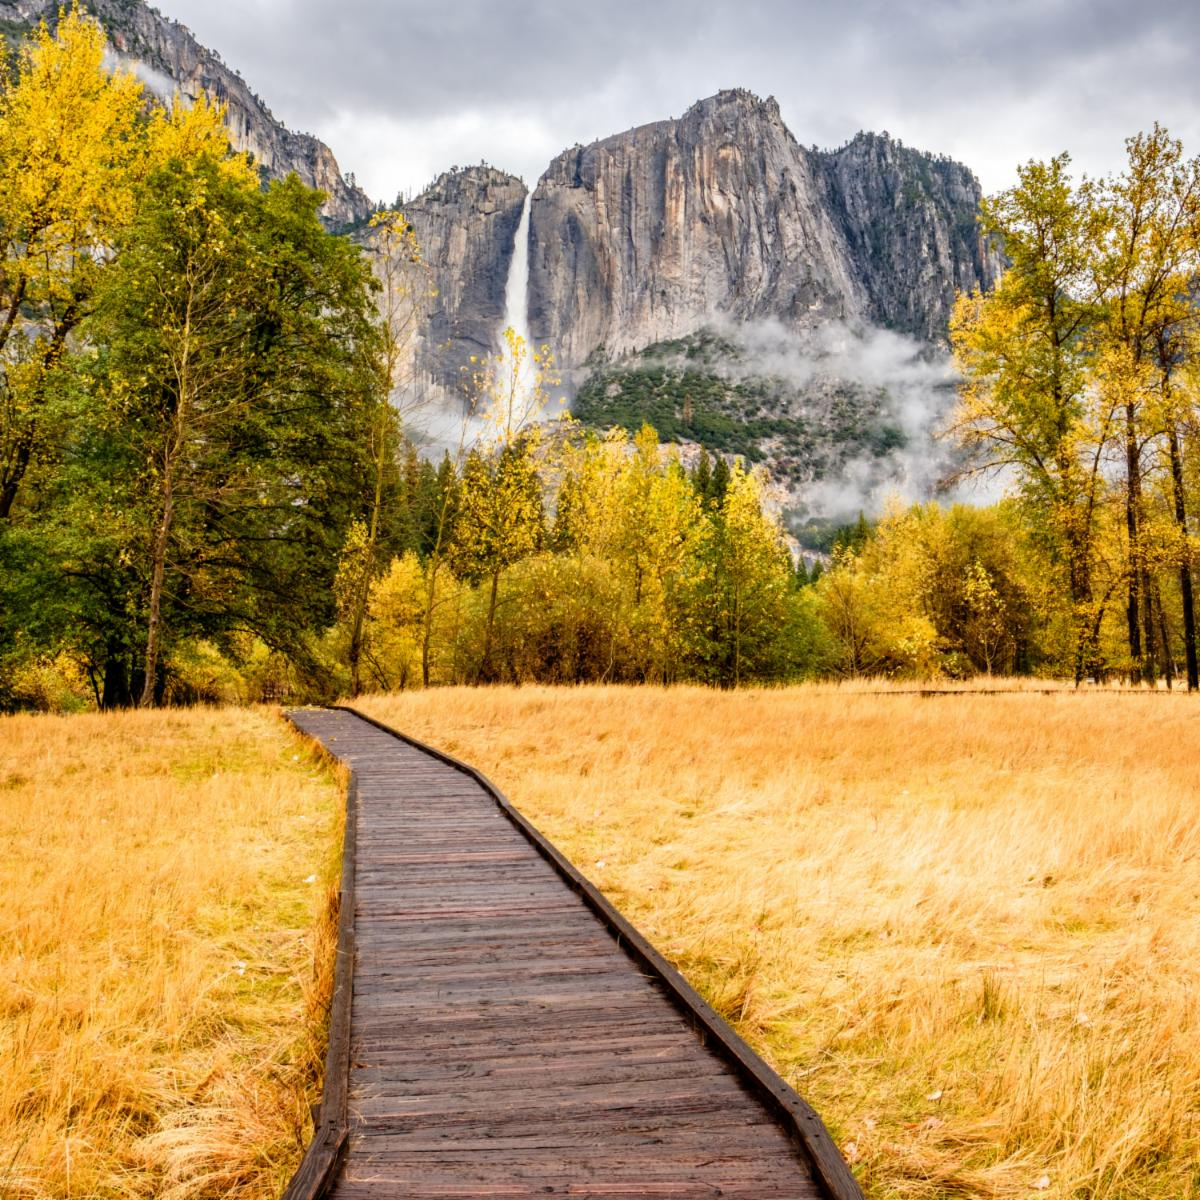 trail at Yosemite National park in the fall